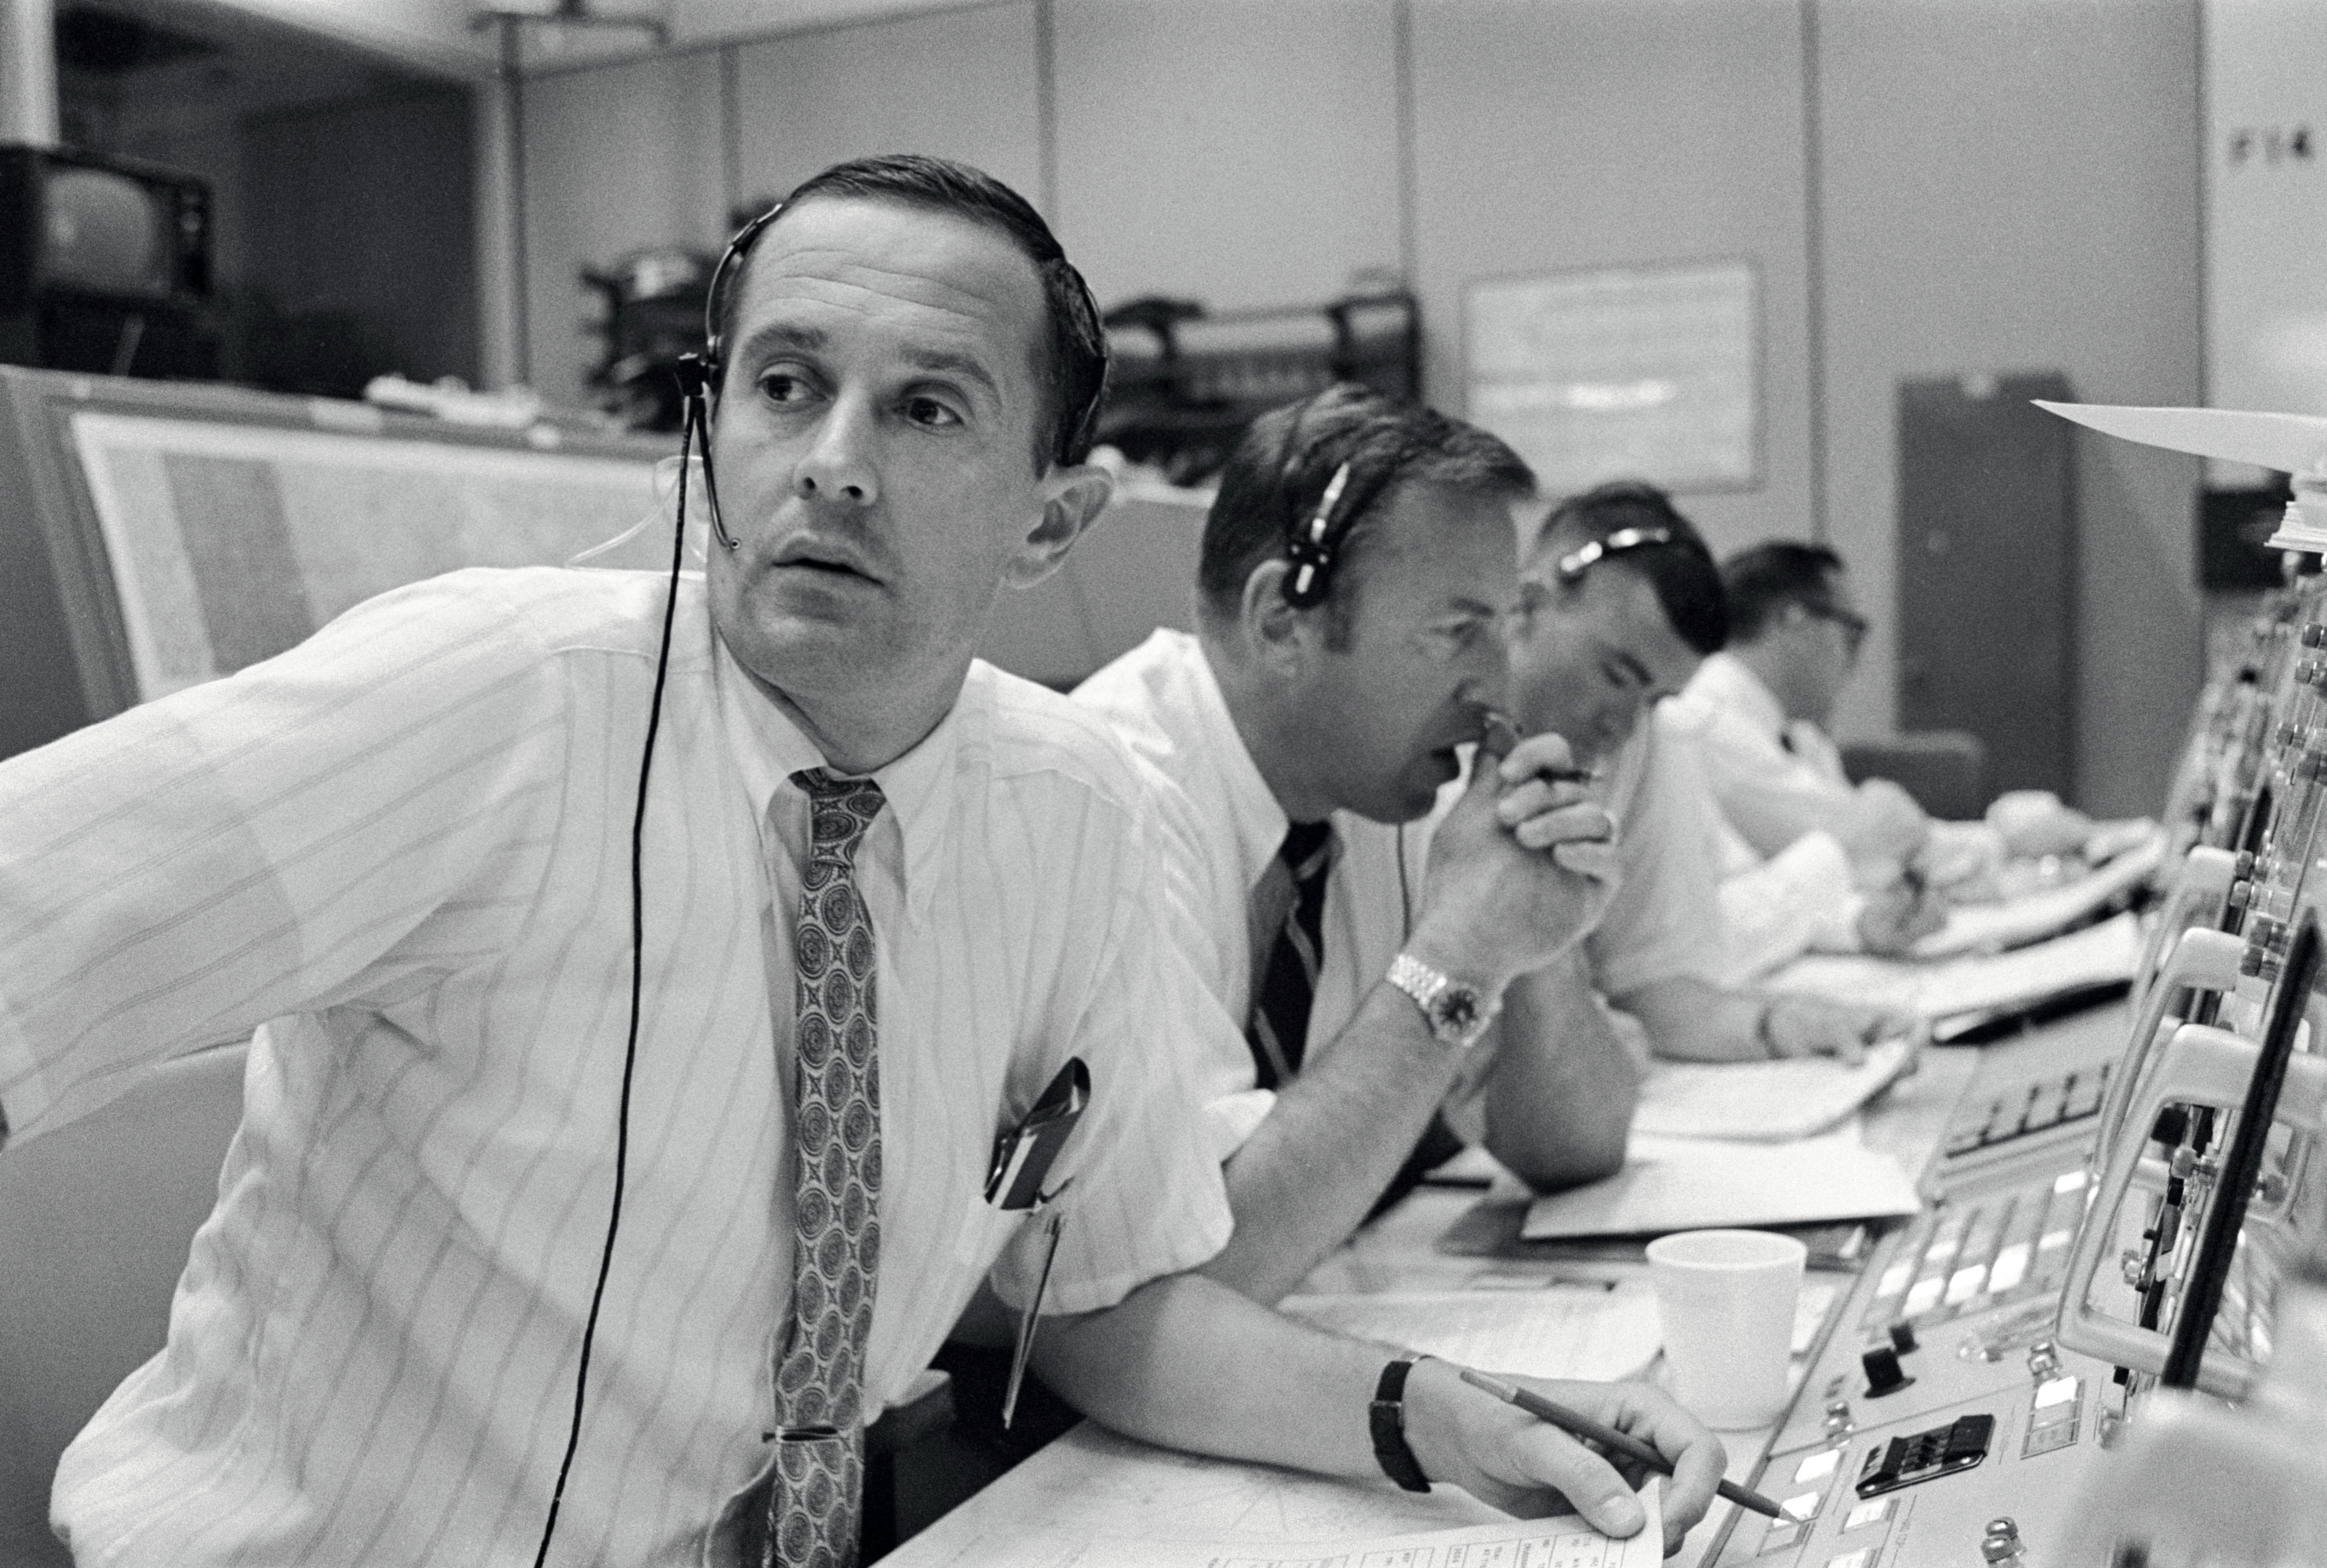 QnA VBage Apollo astronaut recounts Mission Control during Moon landing: 'It was tense, because this was the real thing now'